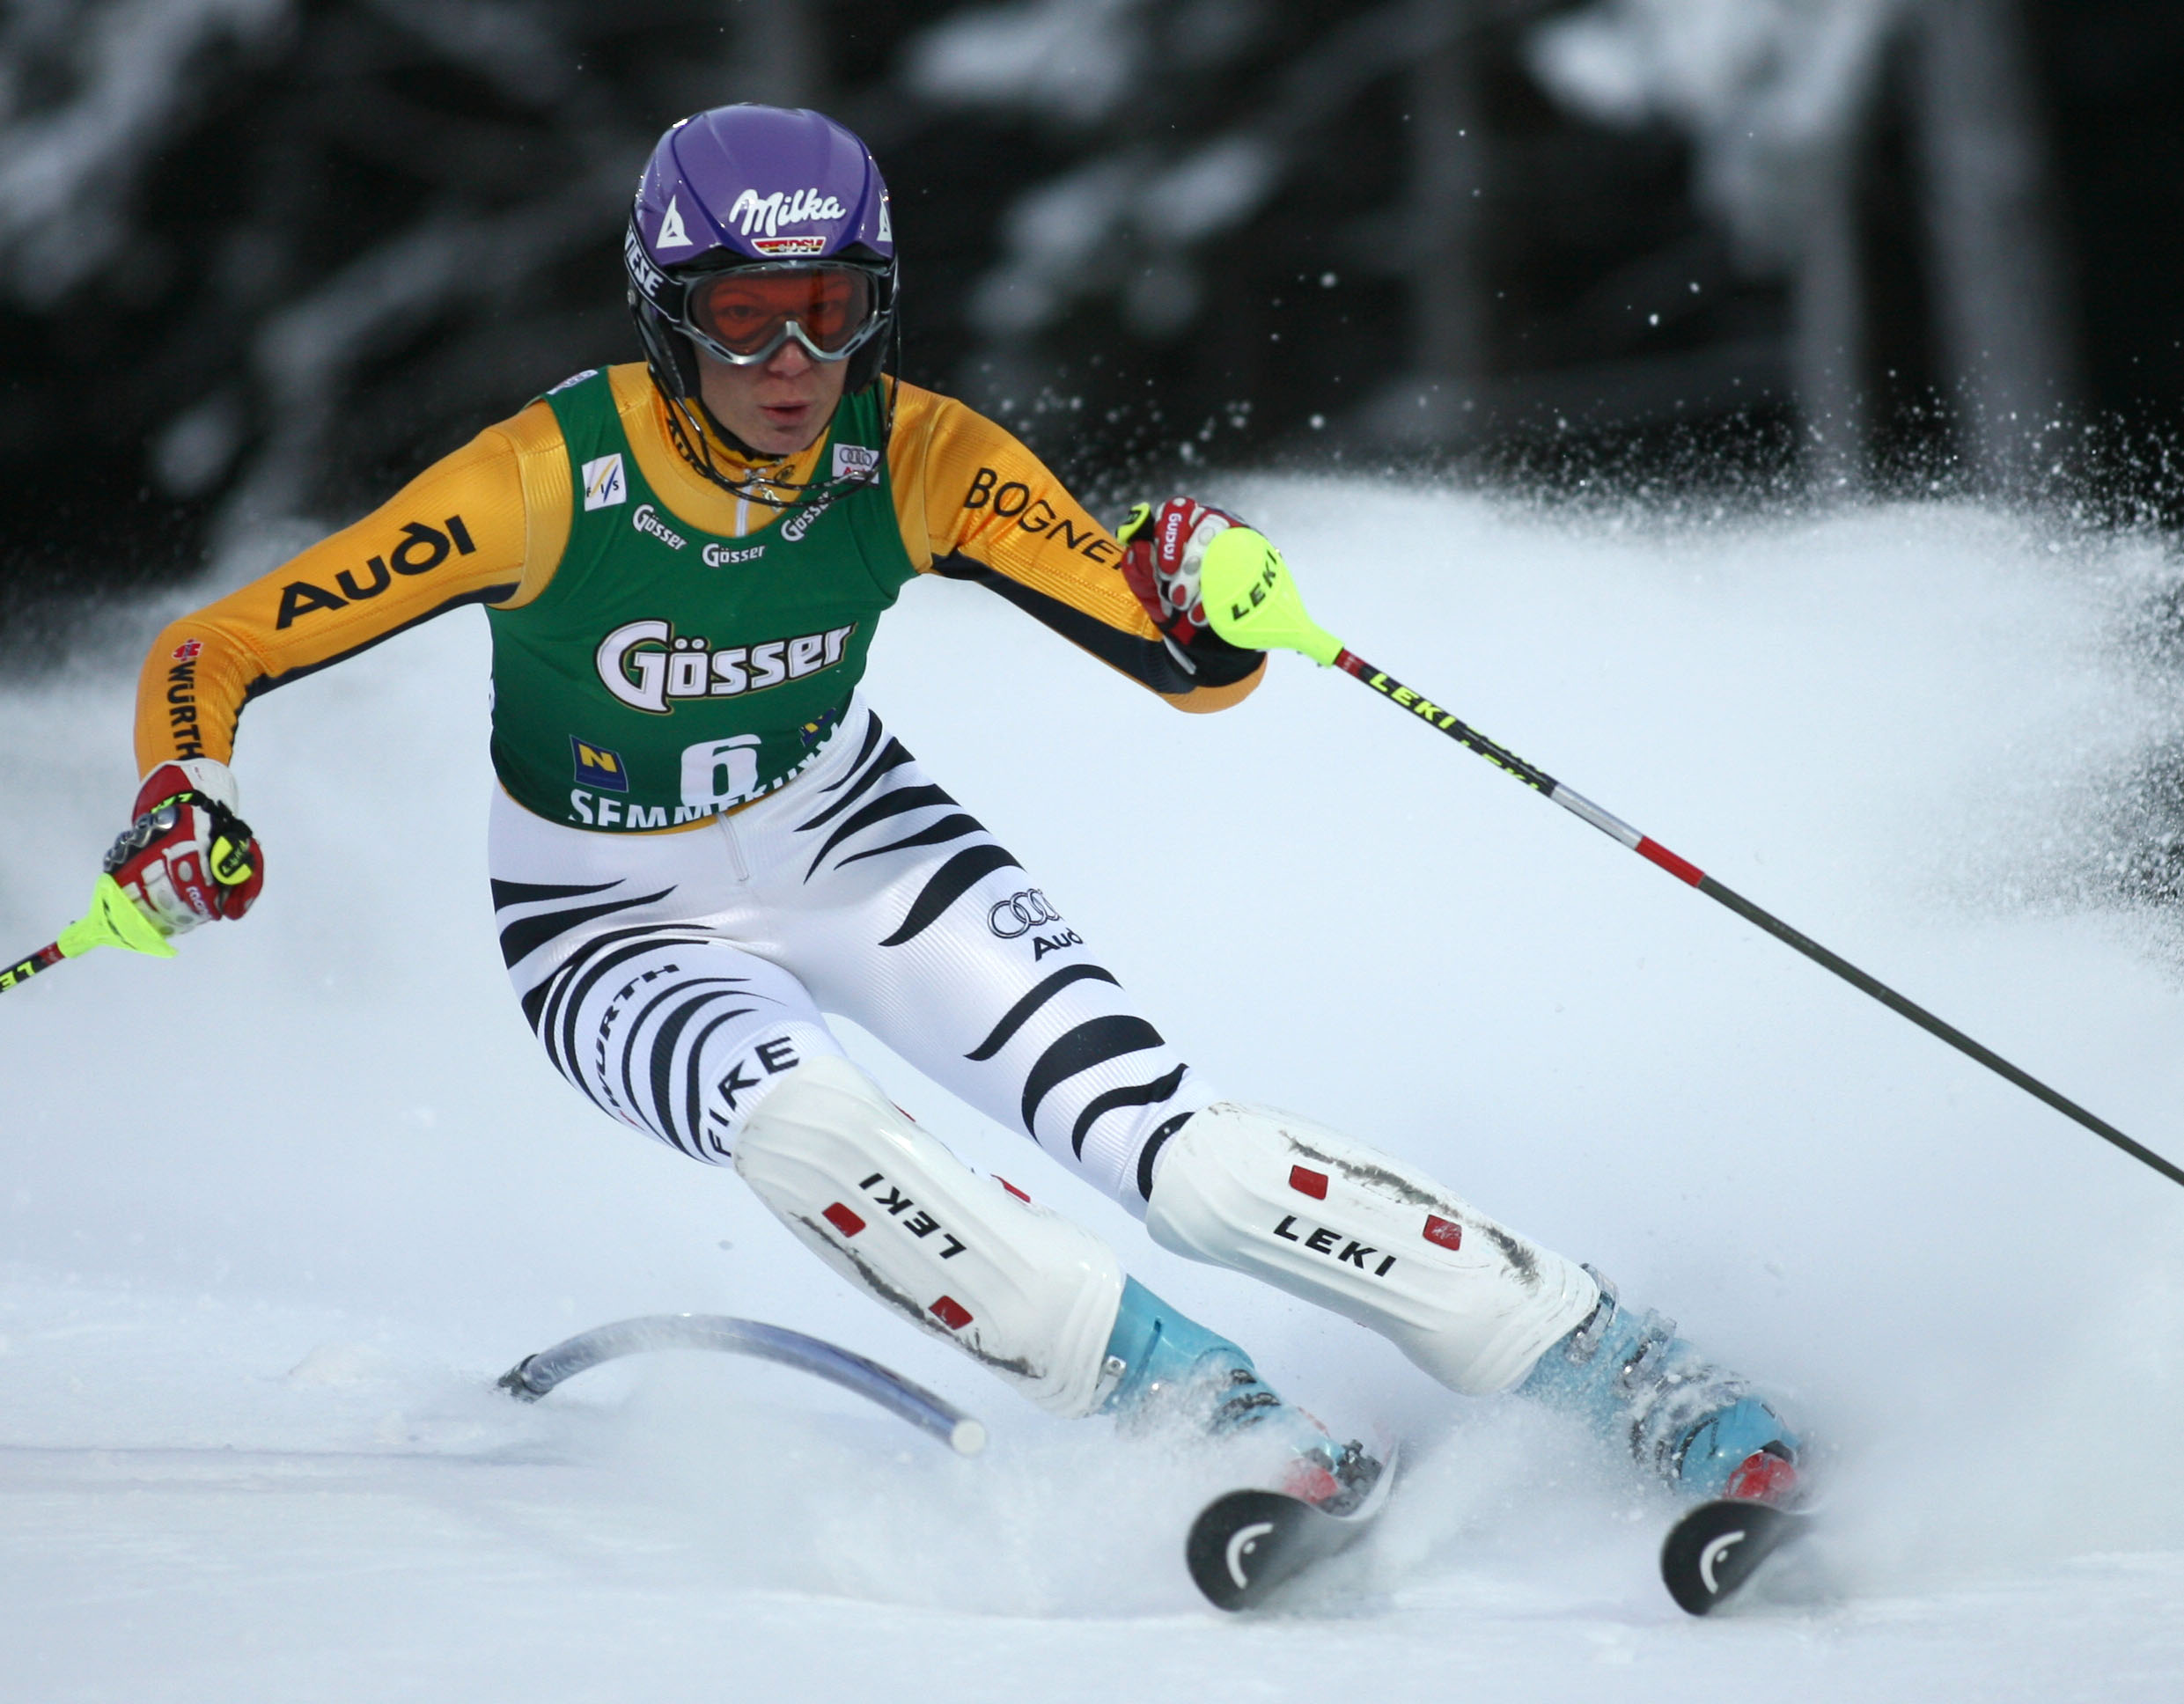 Germany's Maria Riesch continued her stunning slalom form with a second successive victory in a World Cup race at Semmering on Monday.